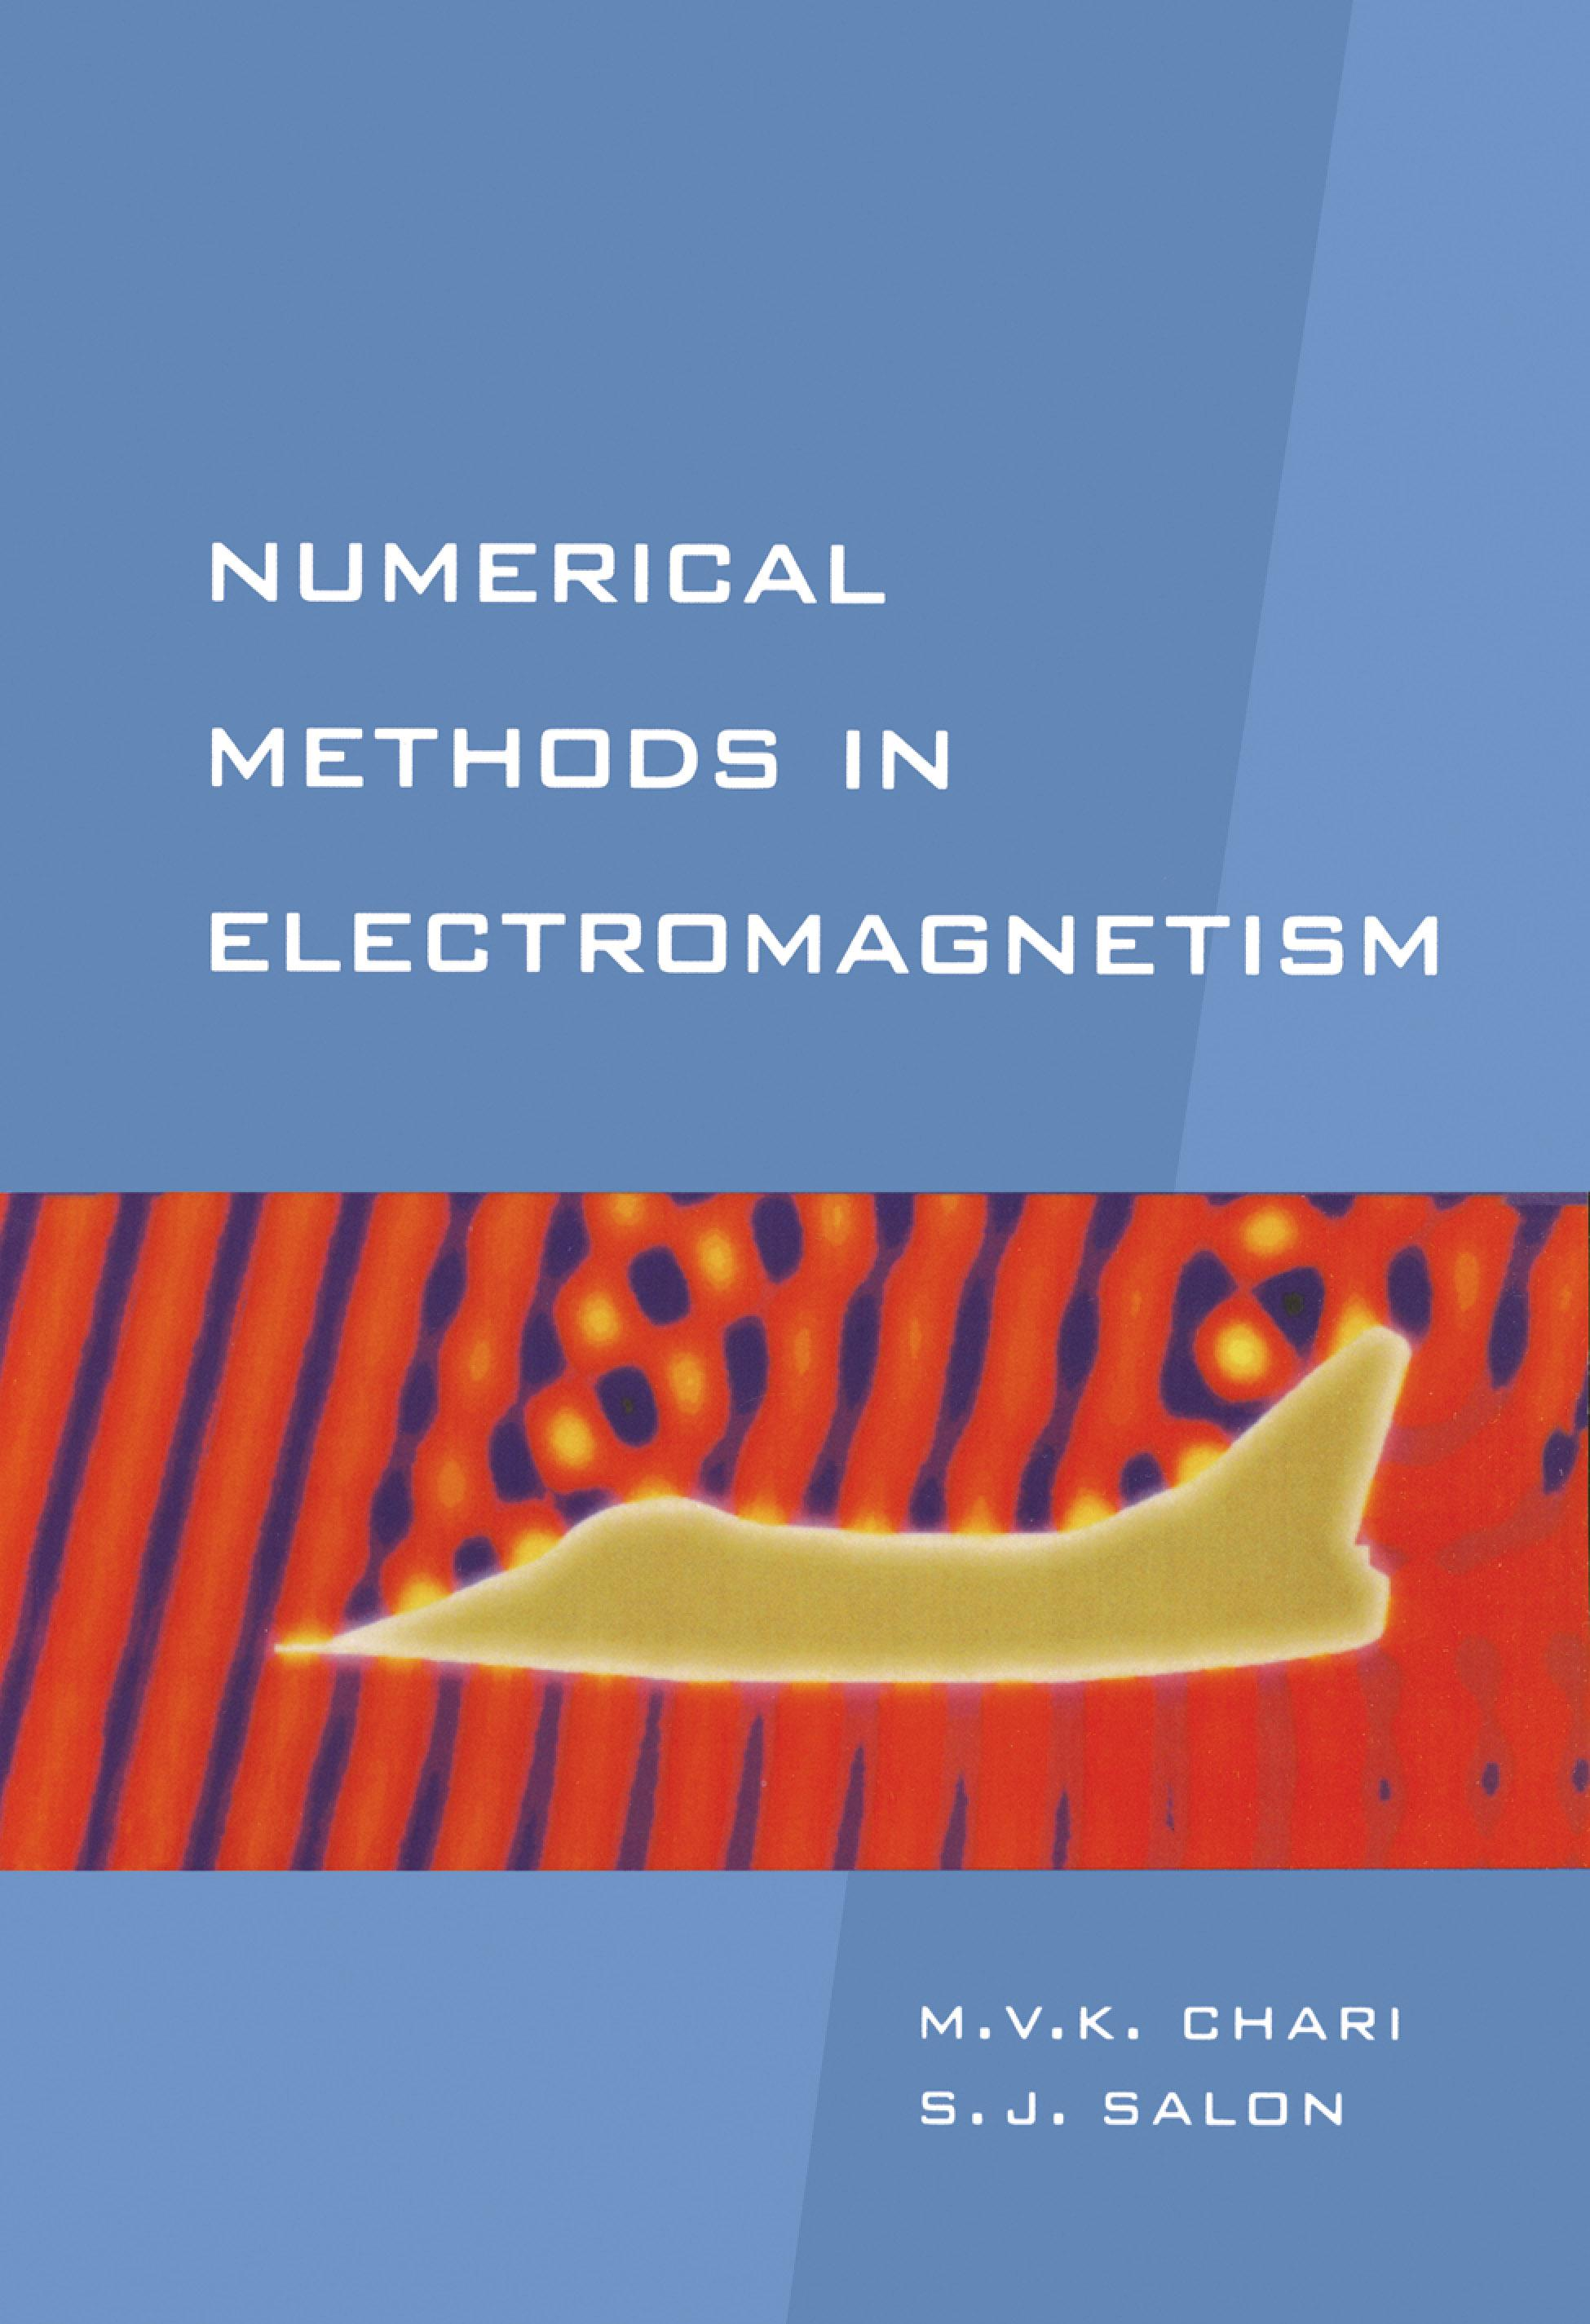 Mon premier blog page 6 numerical methods in electromagnetism sheppard salon and m v k chari fandeluxe Choice Image